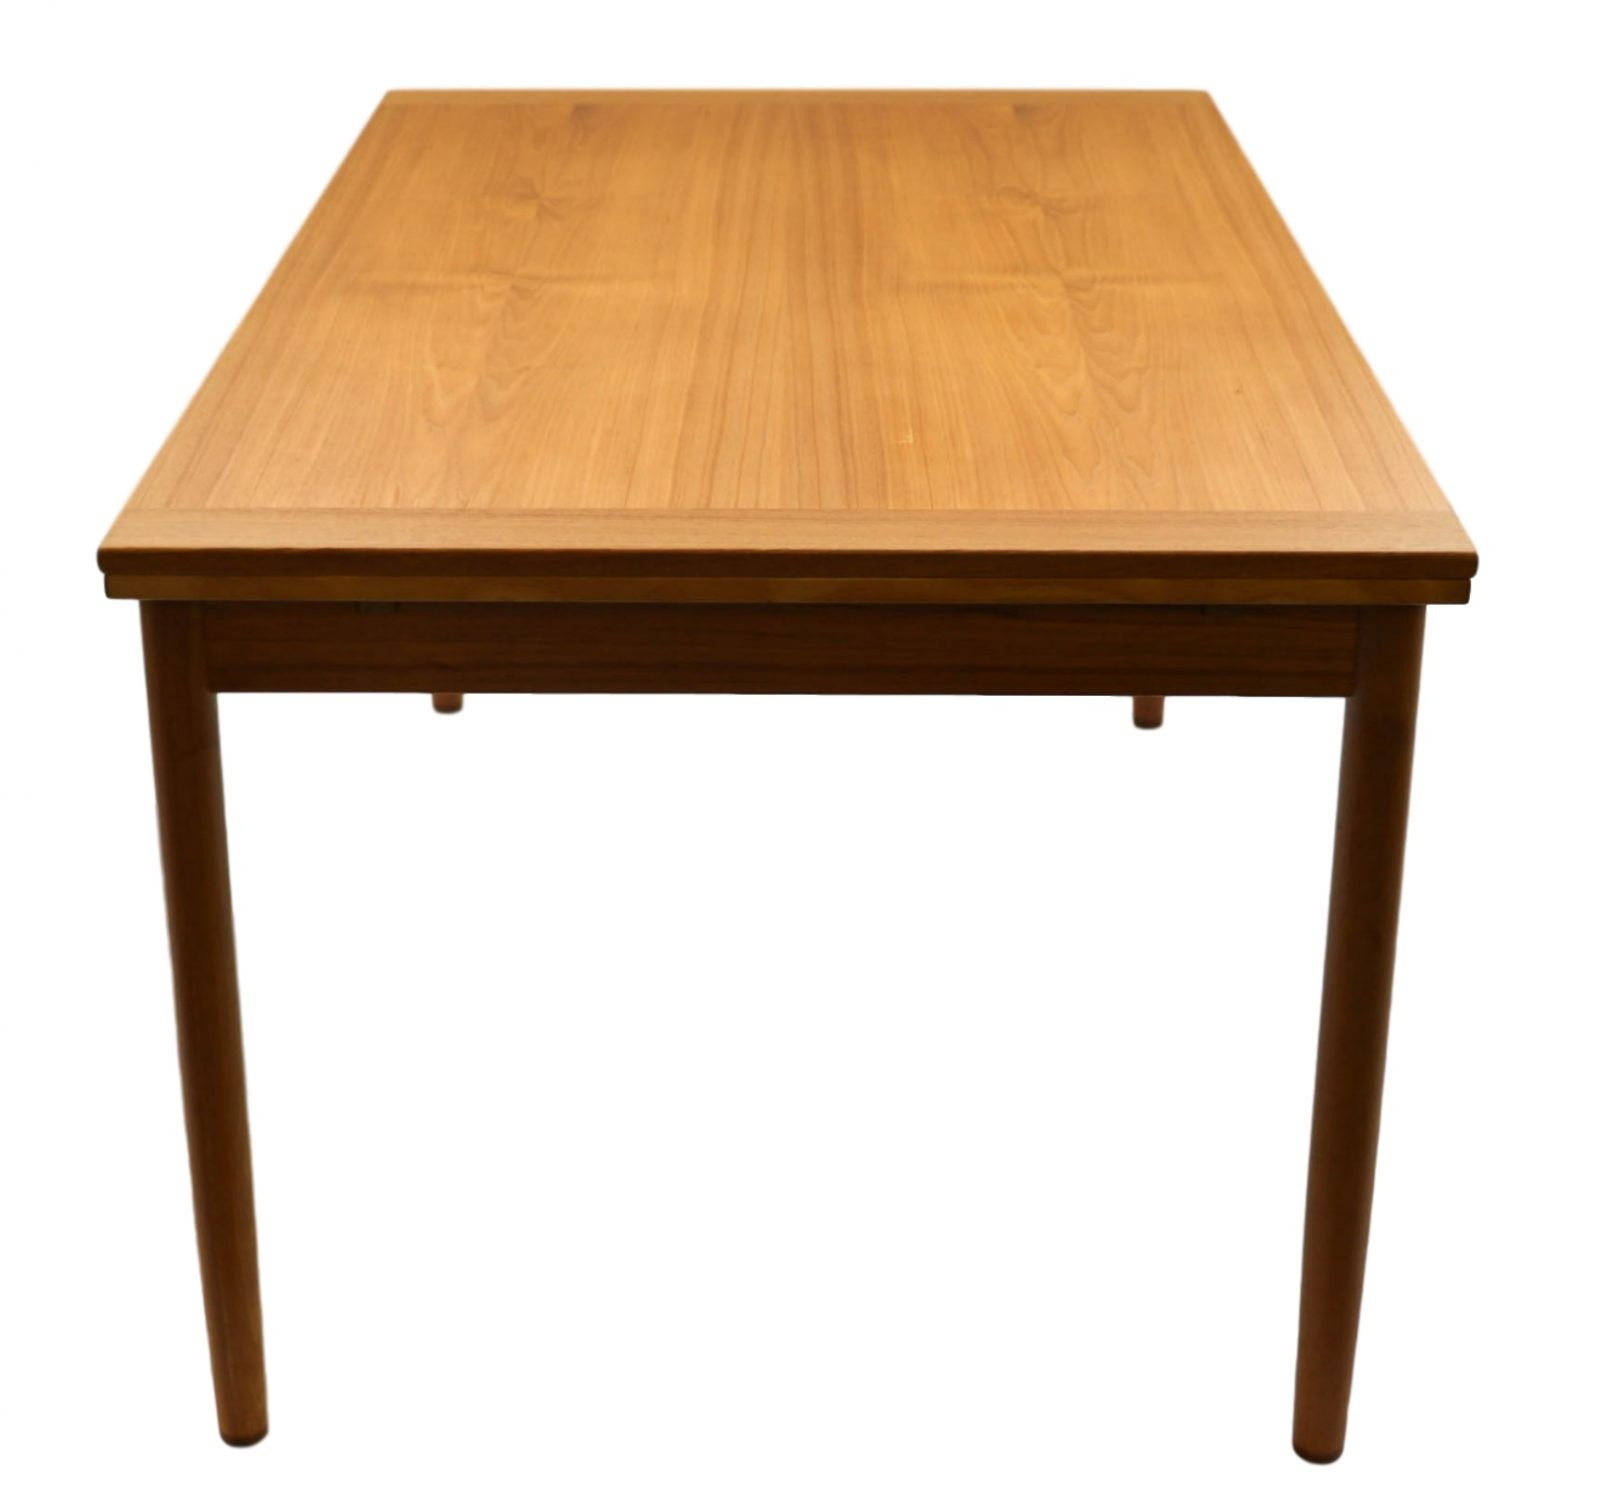 Mid Century Danish Modern Small Scale Drawer Coffee Table: Danish Mid Century Modern Teak Extendable Dining Table